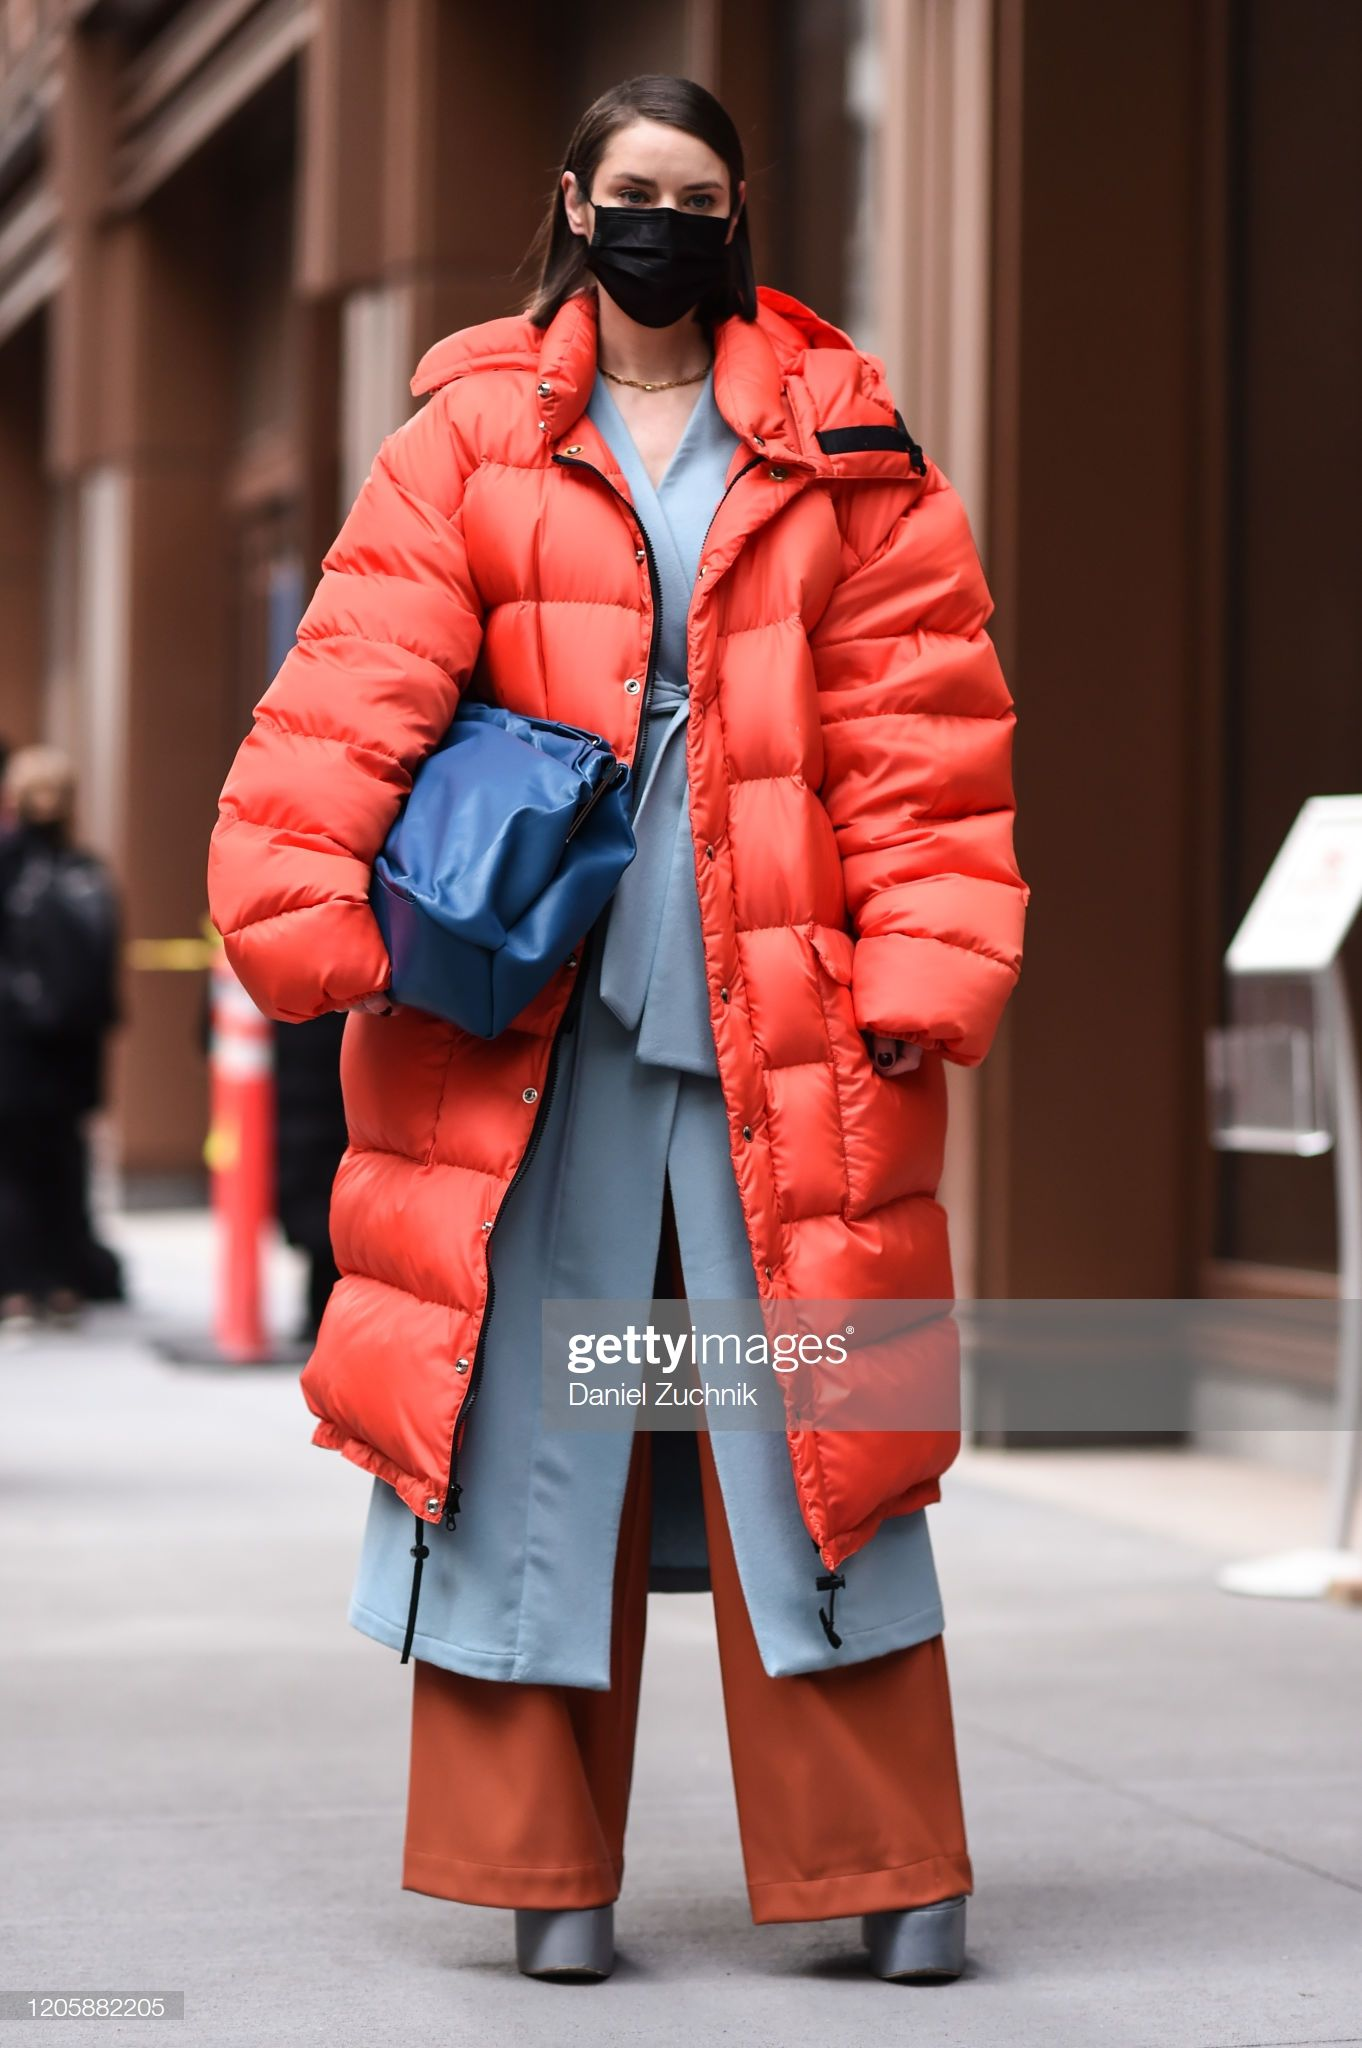 Marina Ingvarsson is seen wearing an orange puffer coat ...